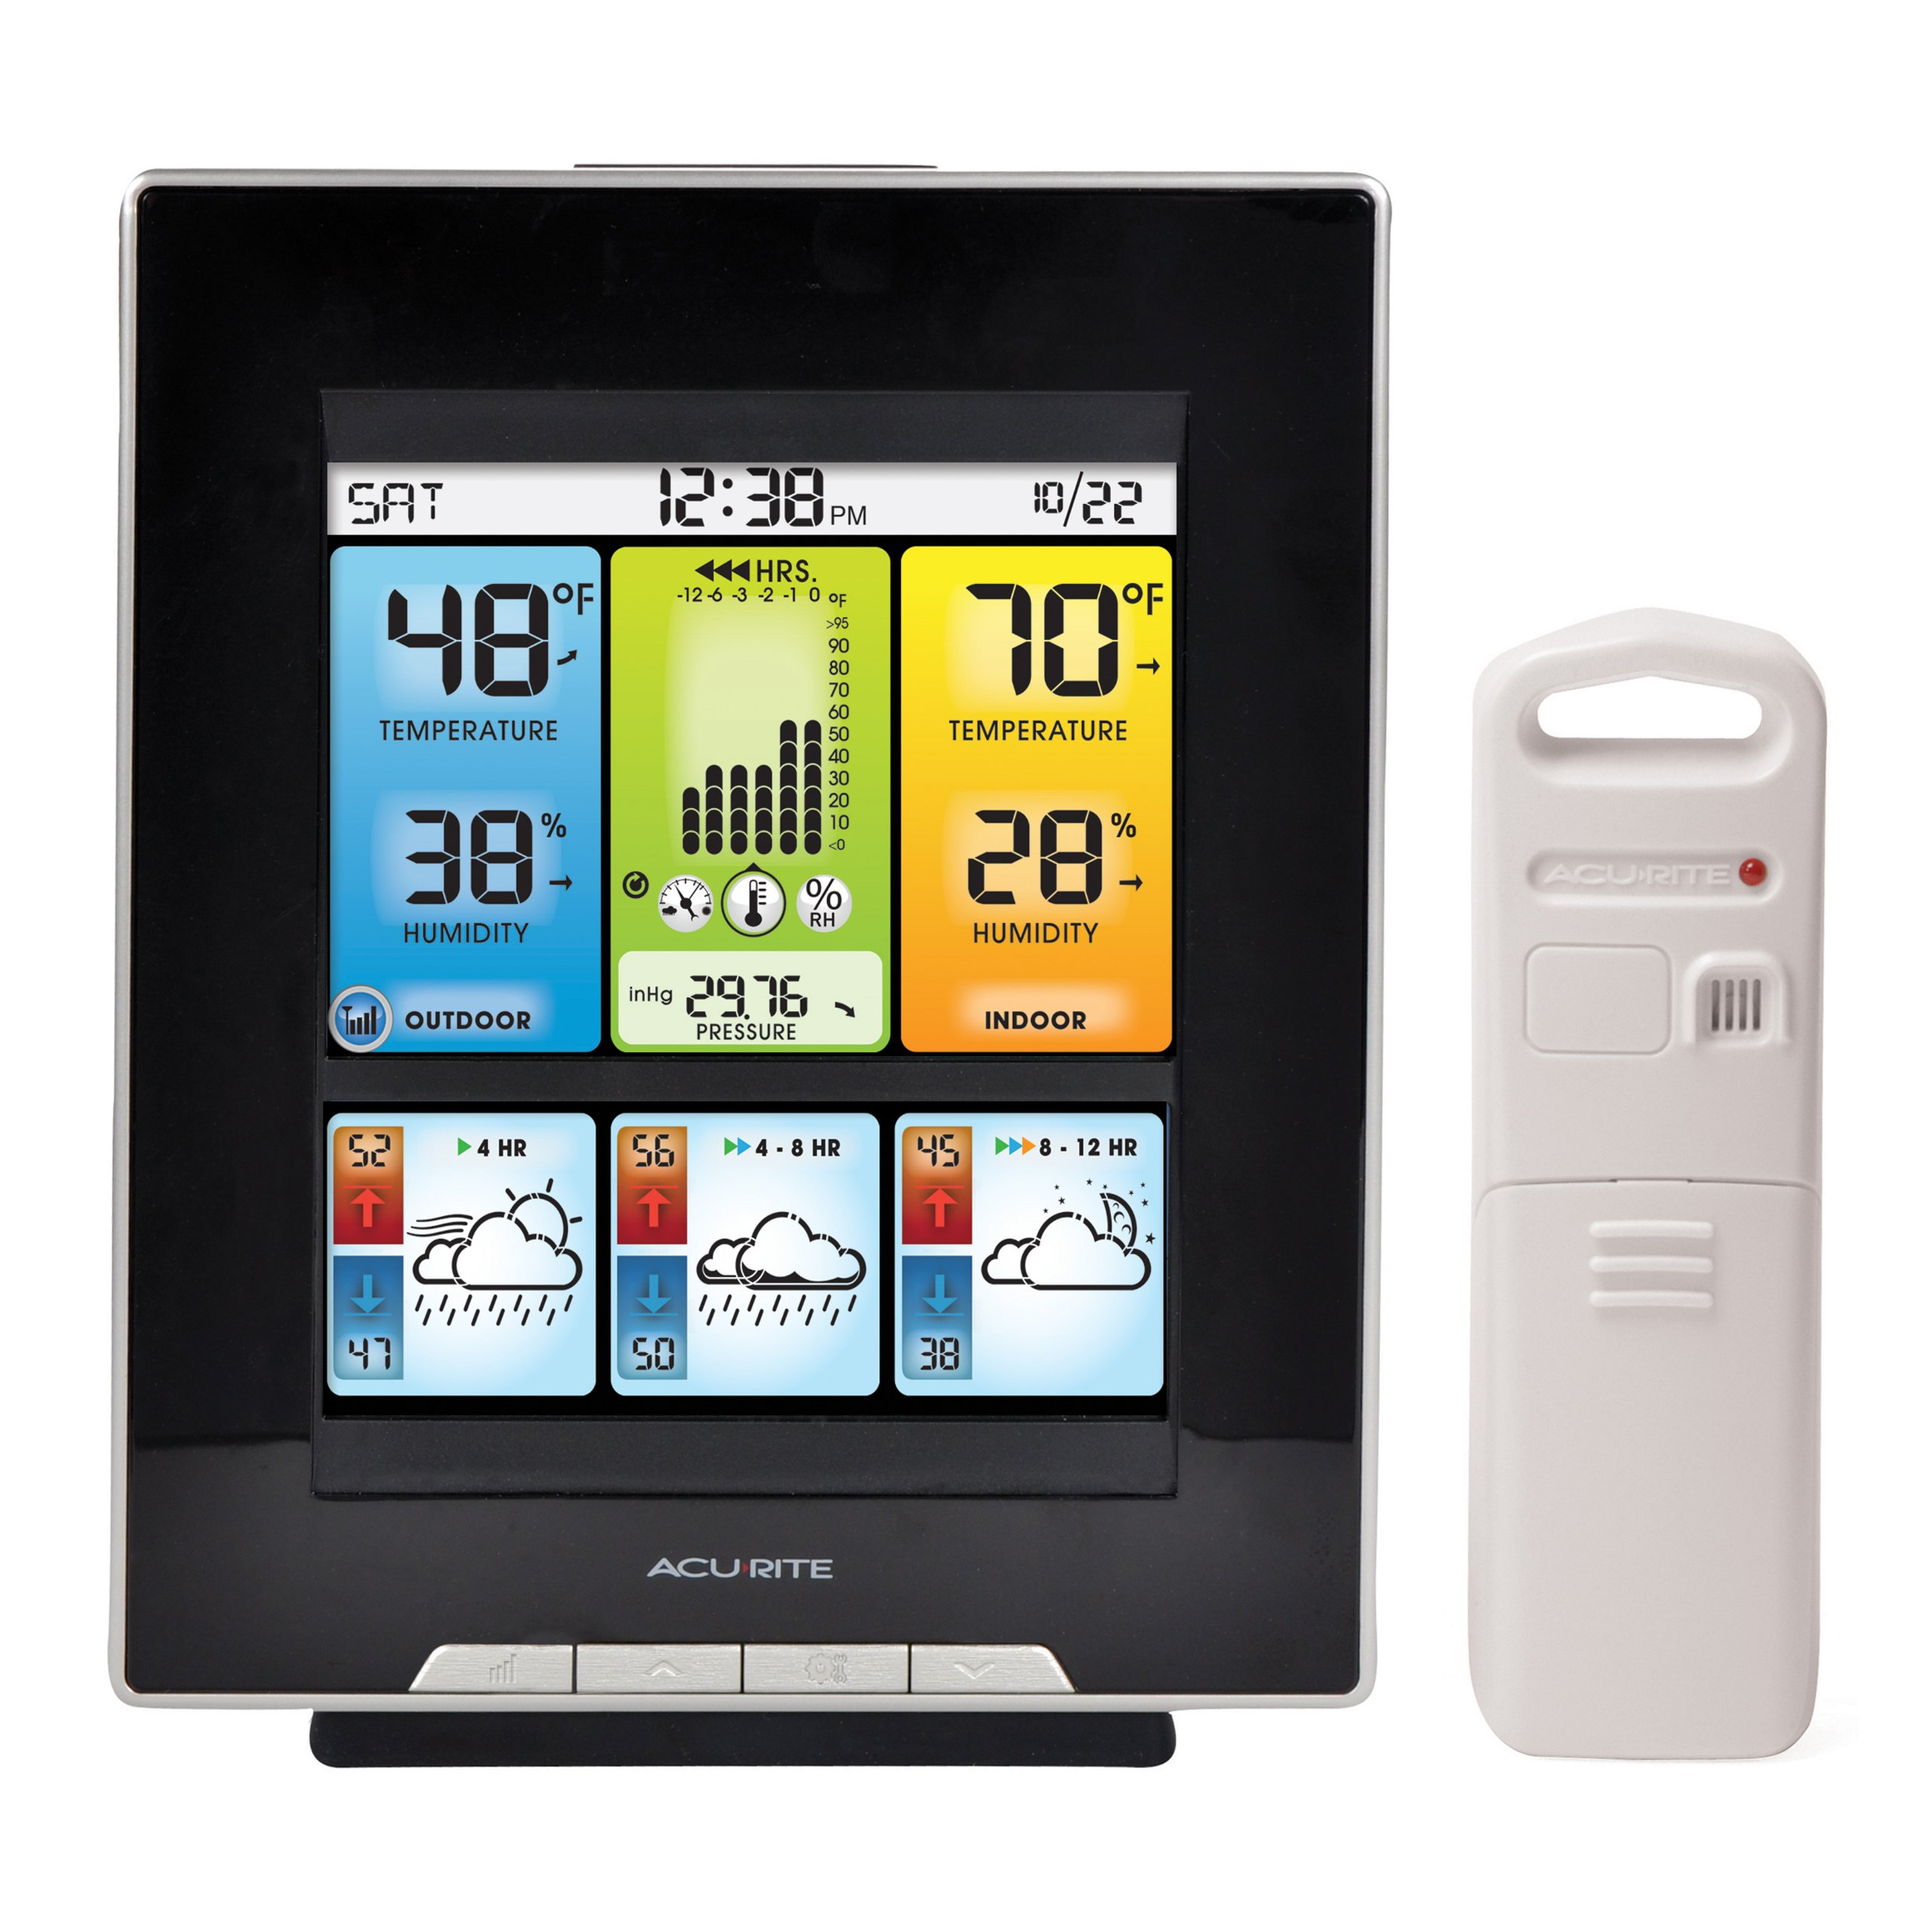 AcuRite 02007 Digital Home Weather Station with Morning Noon and Night Precision Forecast, Temperature and Humidity Gauge by AcuRite